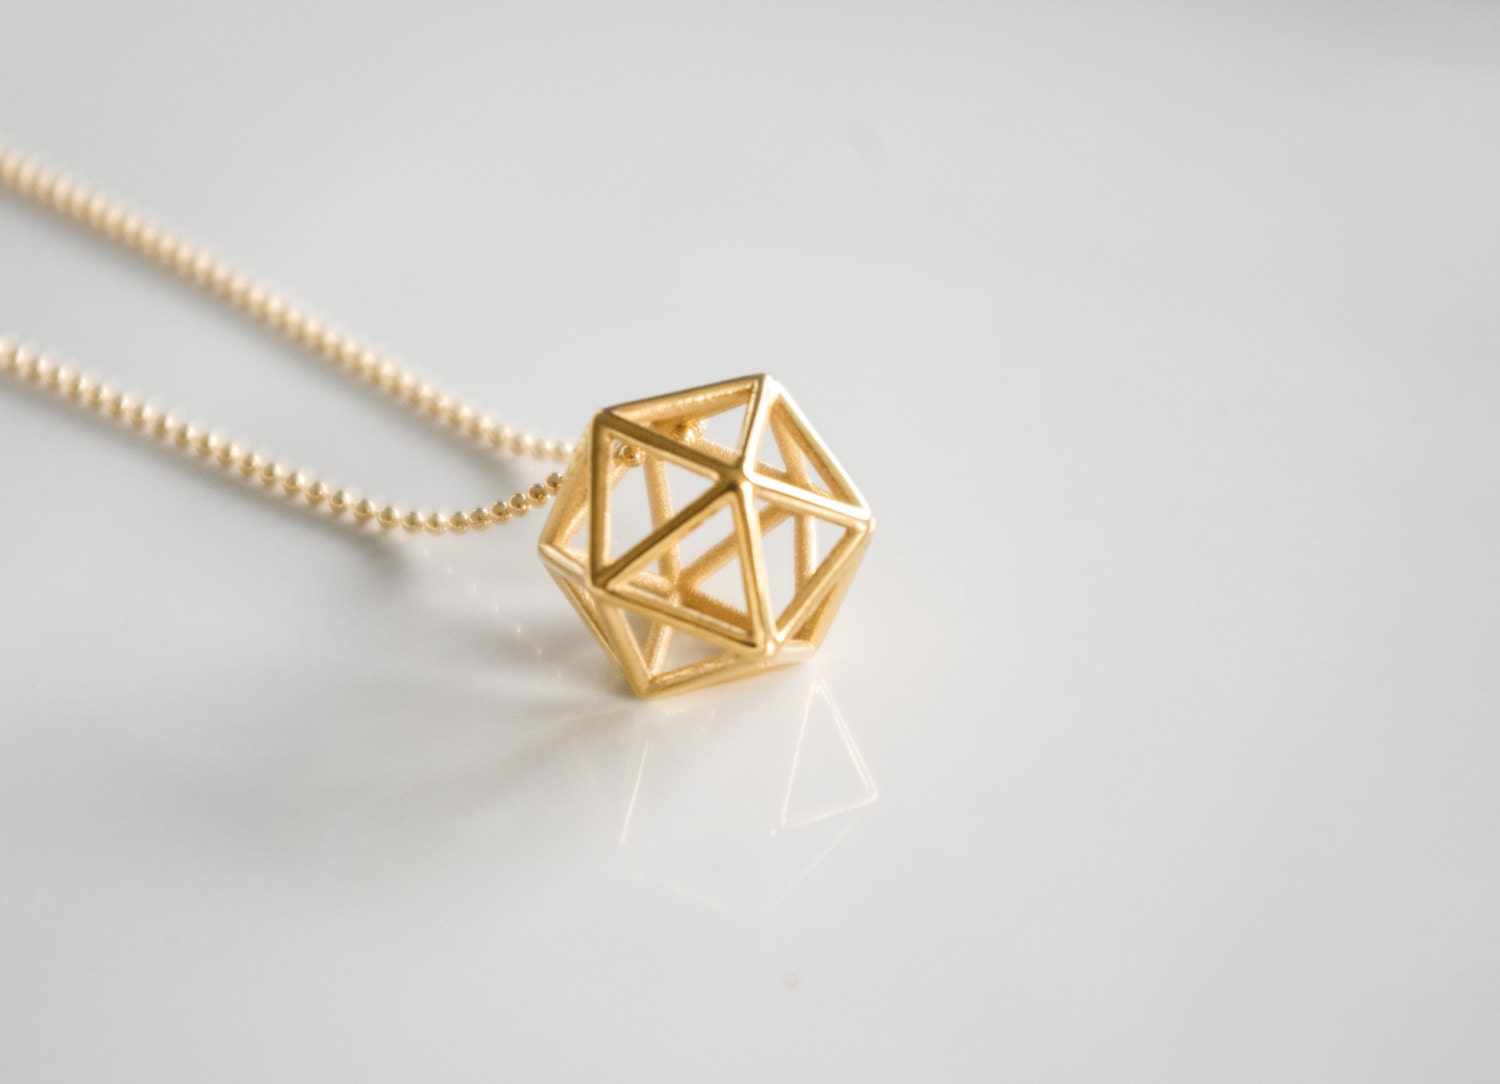 final geometric light crochet reveal polyhedron pendant shop industrial